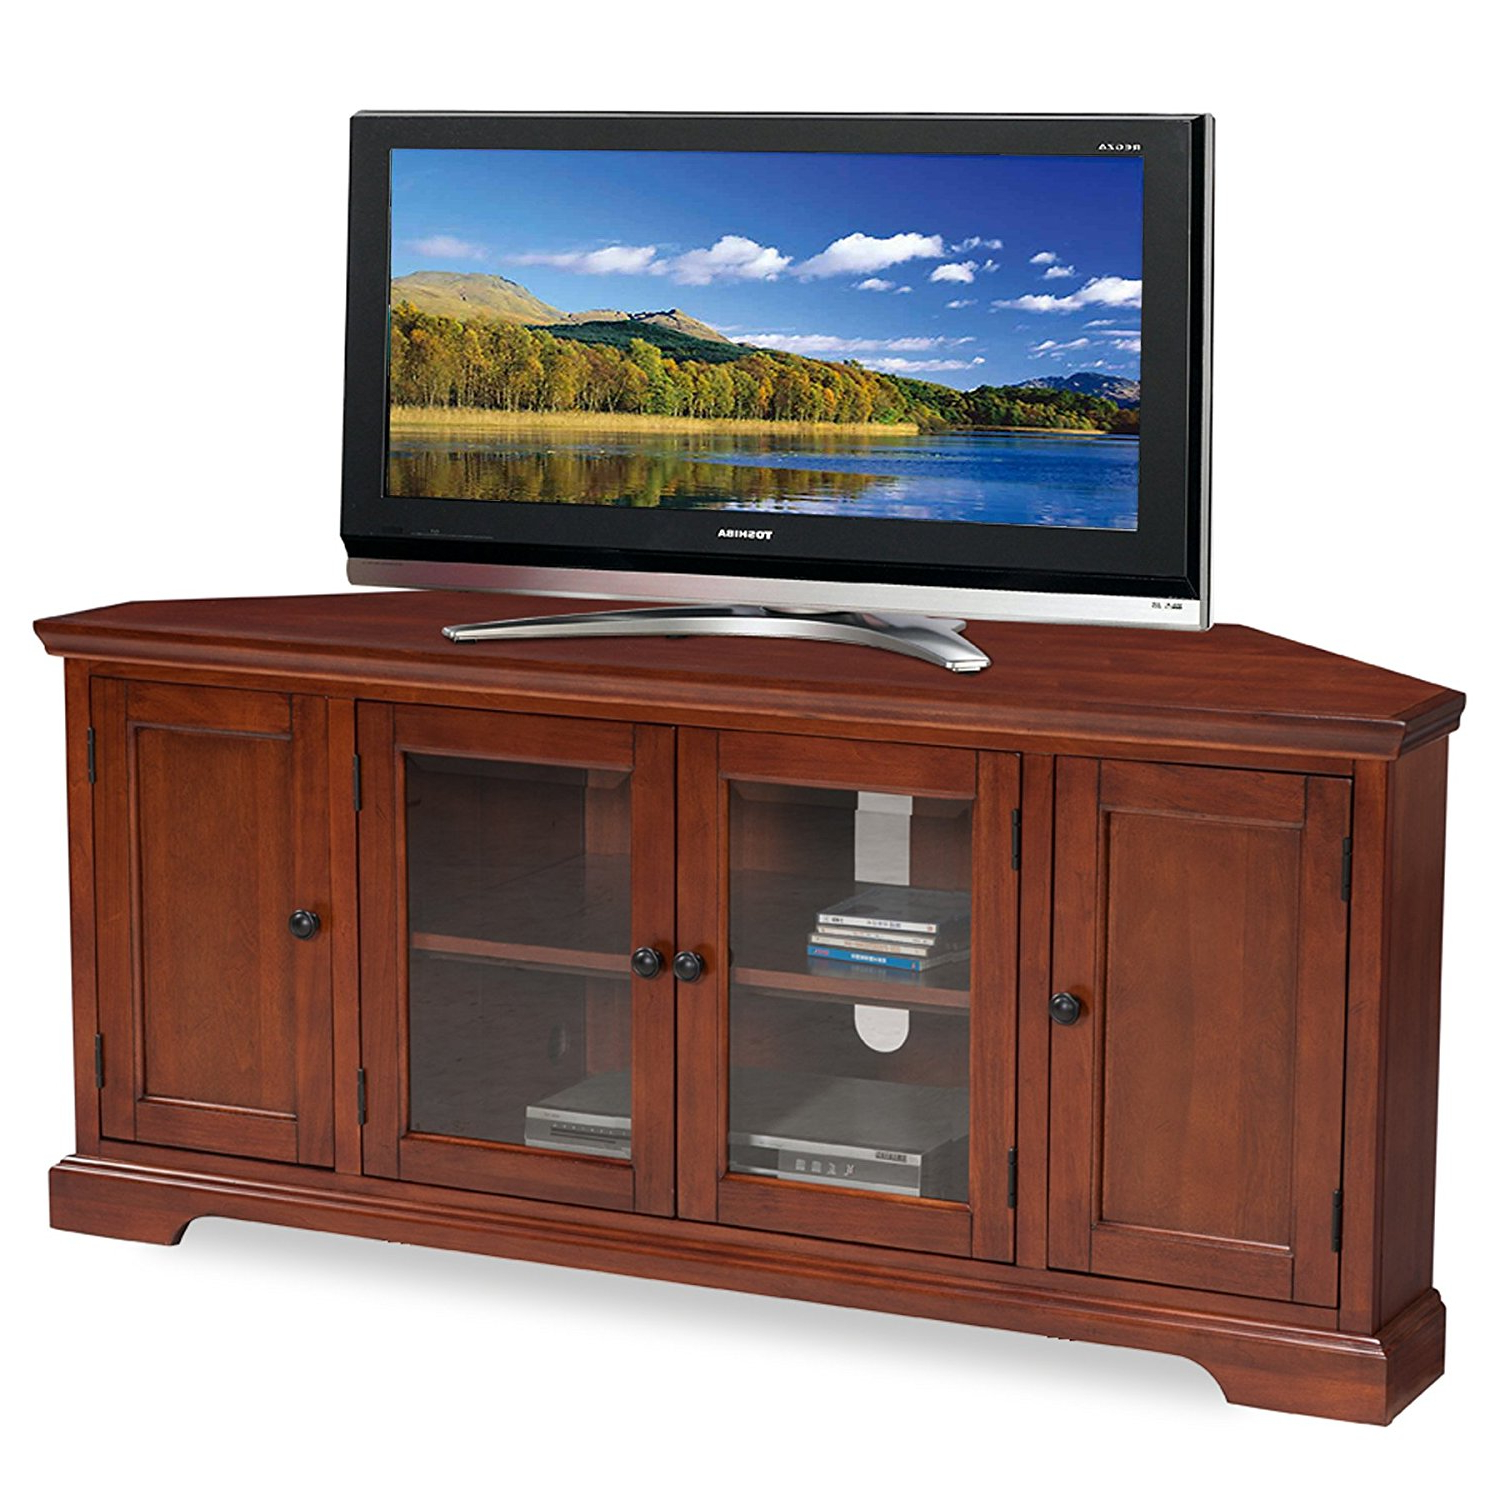 Recent Cheap Hardwood Tv Stand, Find Hardwood Tv Stand Deals On Line At With Regard To Corner Tv Stands For 60 Inch Flat Screens (View 13 of 20)